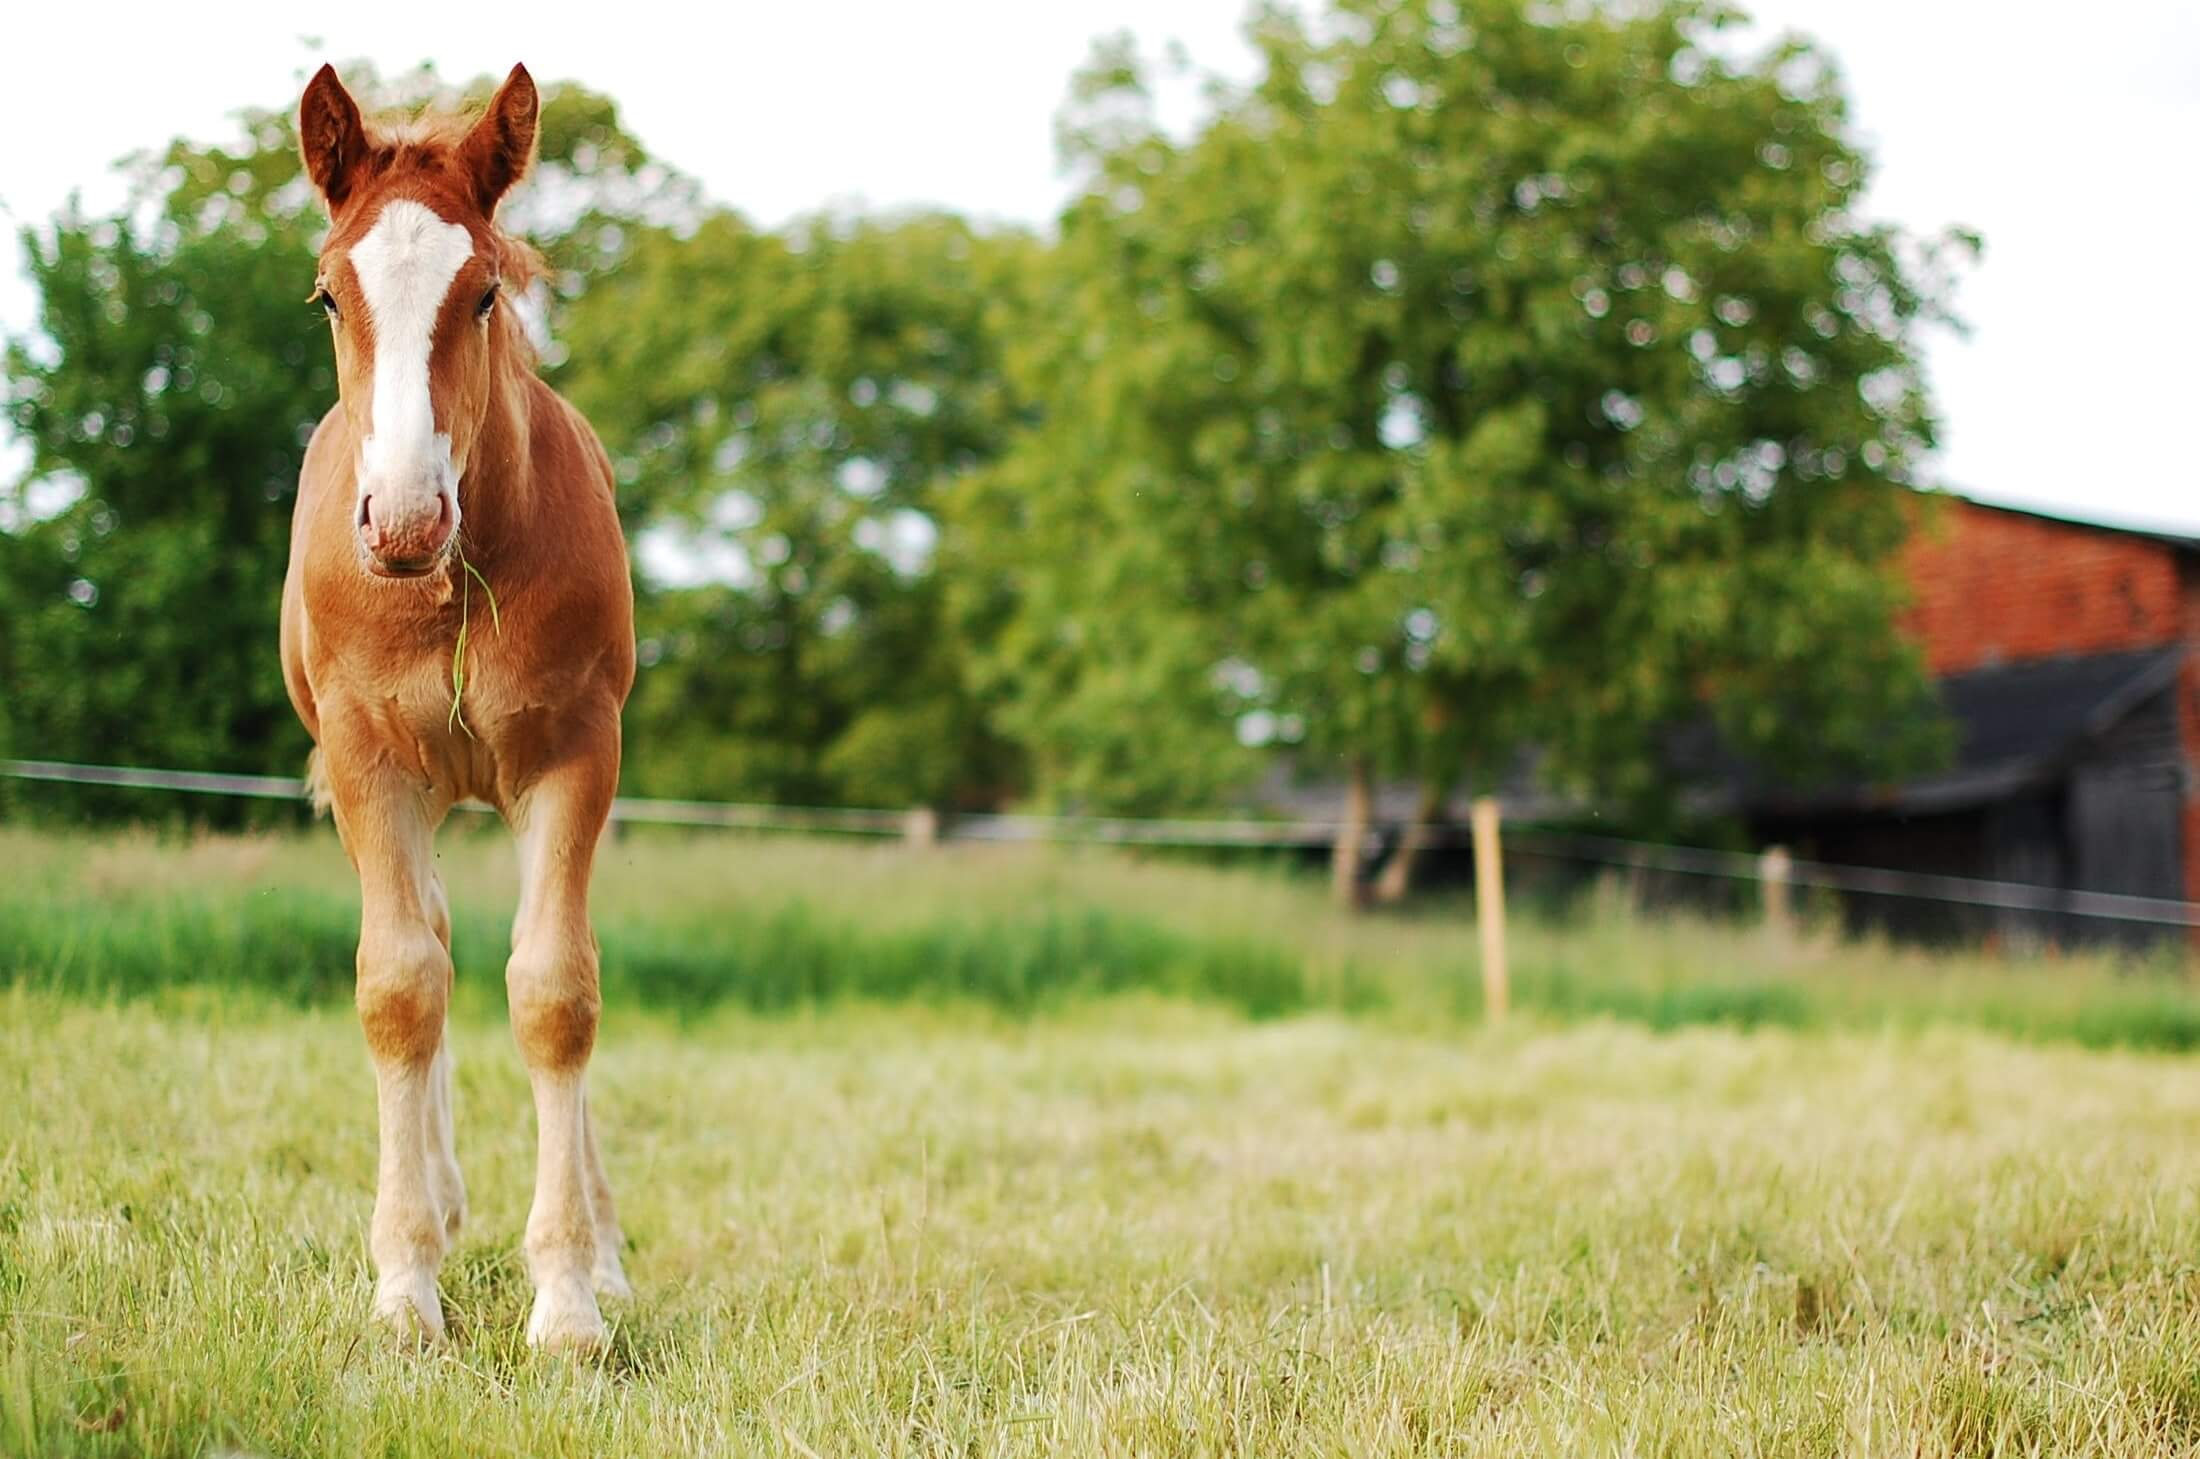 A young light brown horse with a large white area that reaches between the eyes down to the nose eats some grass in a field.